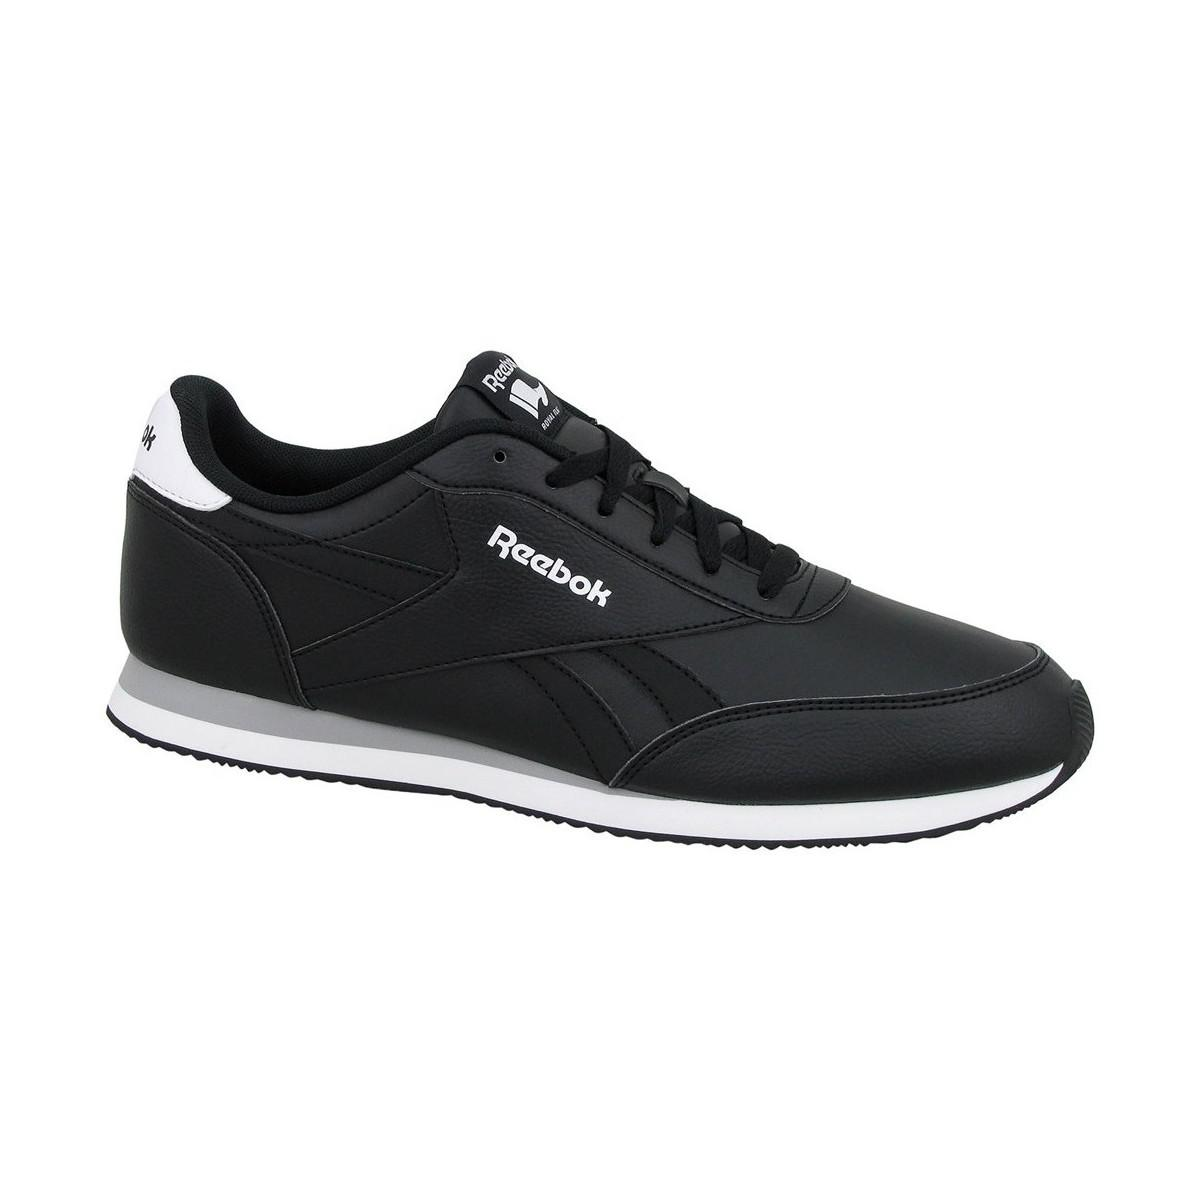 f08fa4acc5c80 Reebok Royal Cl Jogger 2l Men s Shoes (trainers) In Black in Black ...